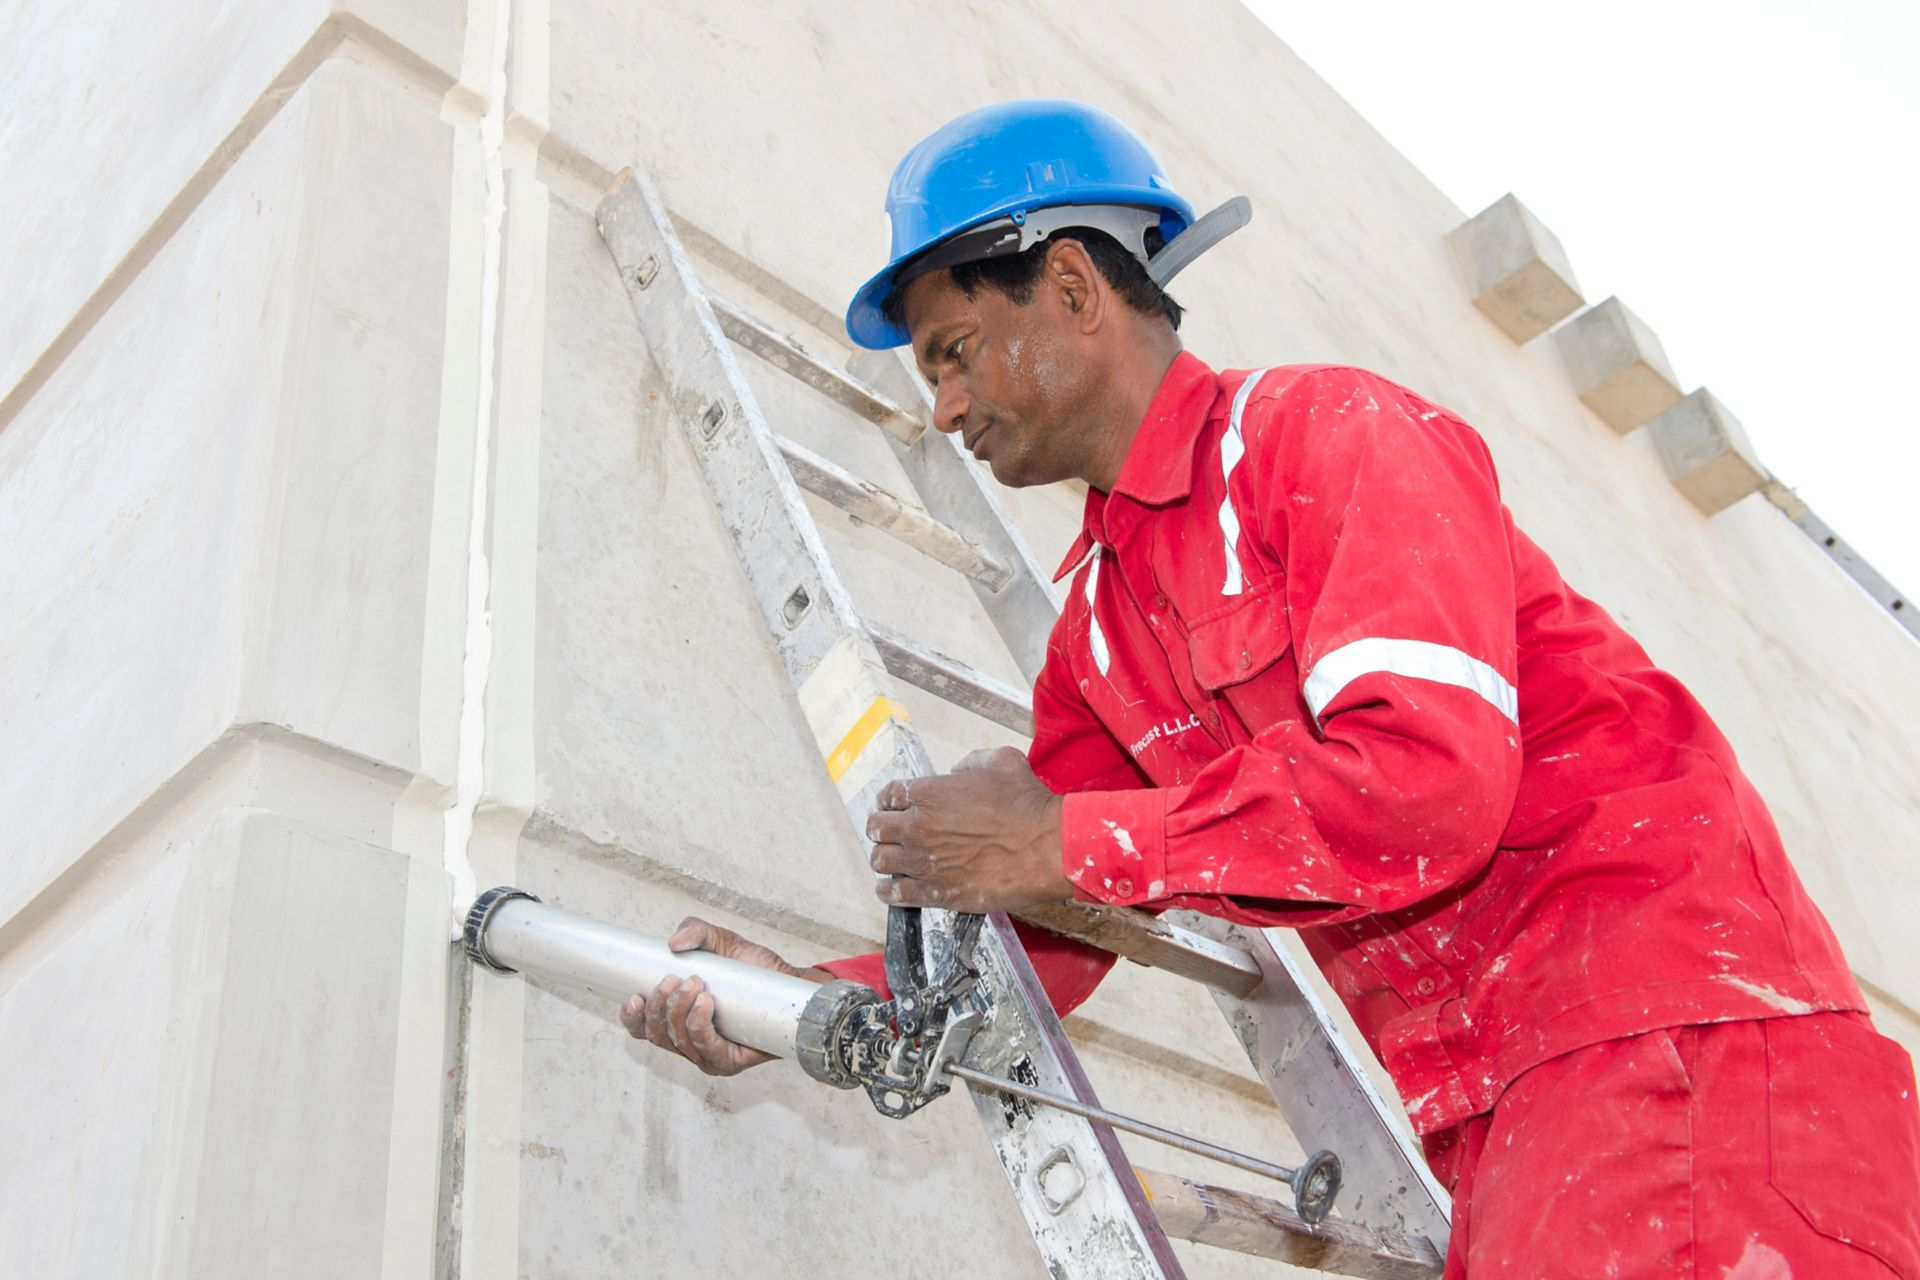 Man sealing joints of Musanda Villa structure with Sikaflex Construction+ at very high temperatures